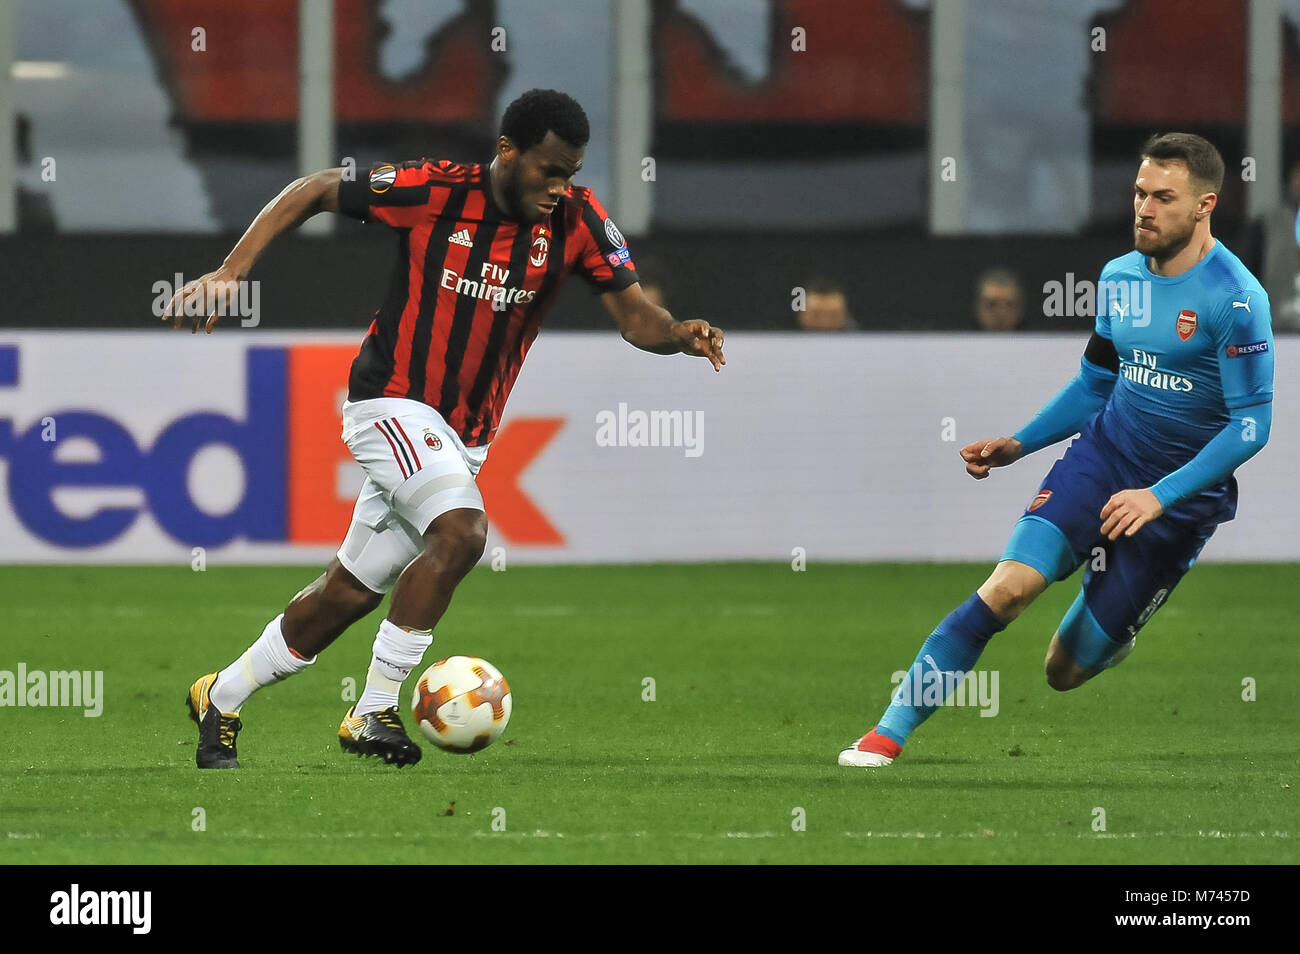 Milan, Italy. 8th March, 2018. Franck Kessie (AC Milan) during the match UEFA Europa League between AC Milan and Stock Photo